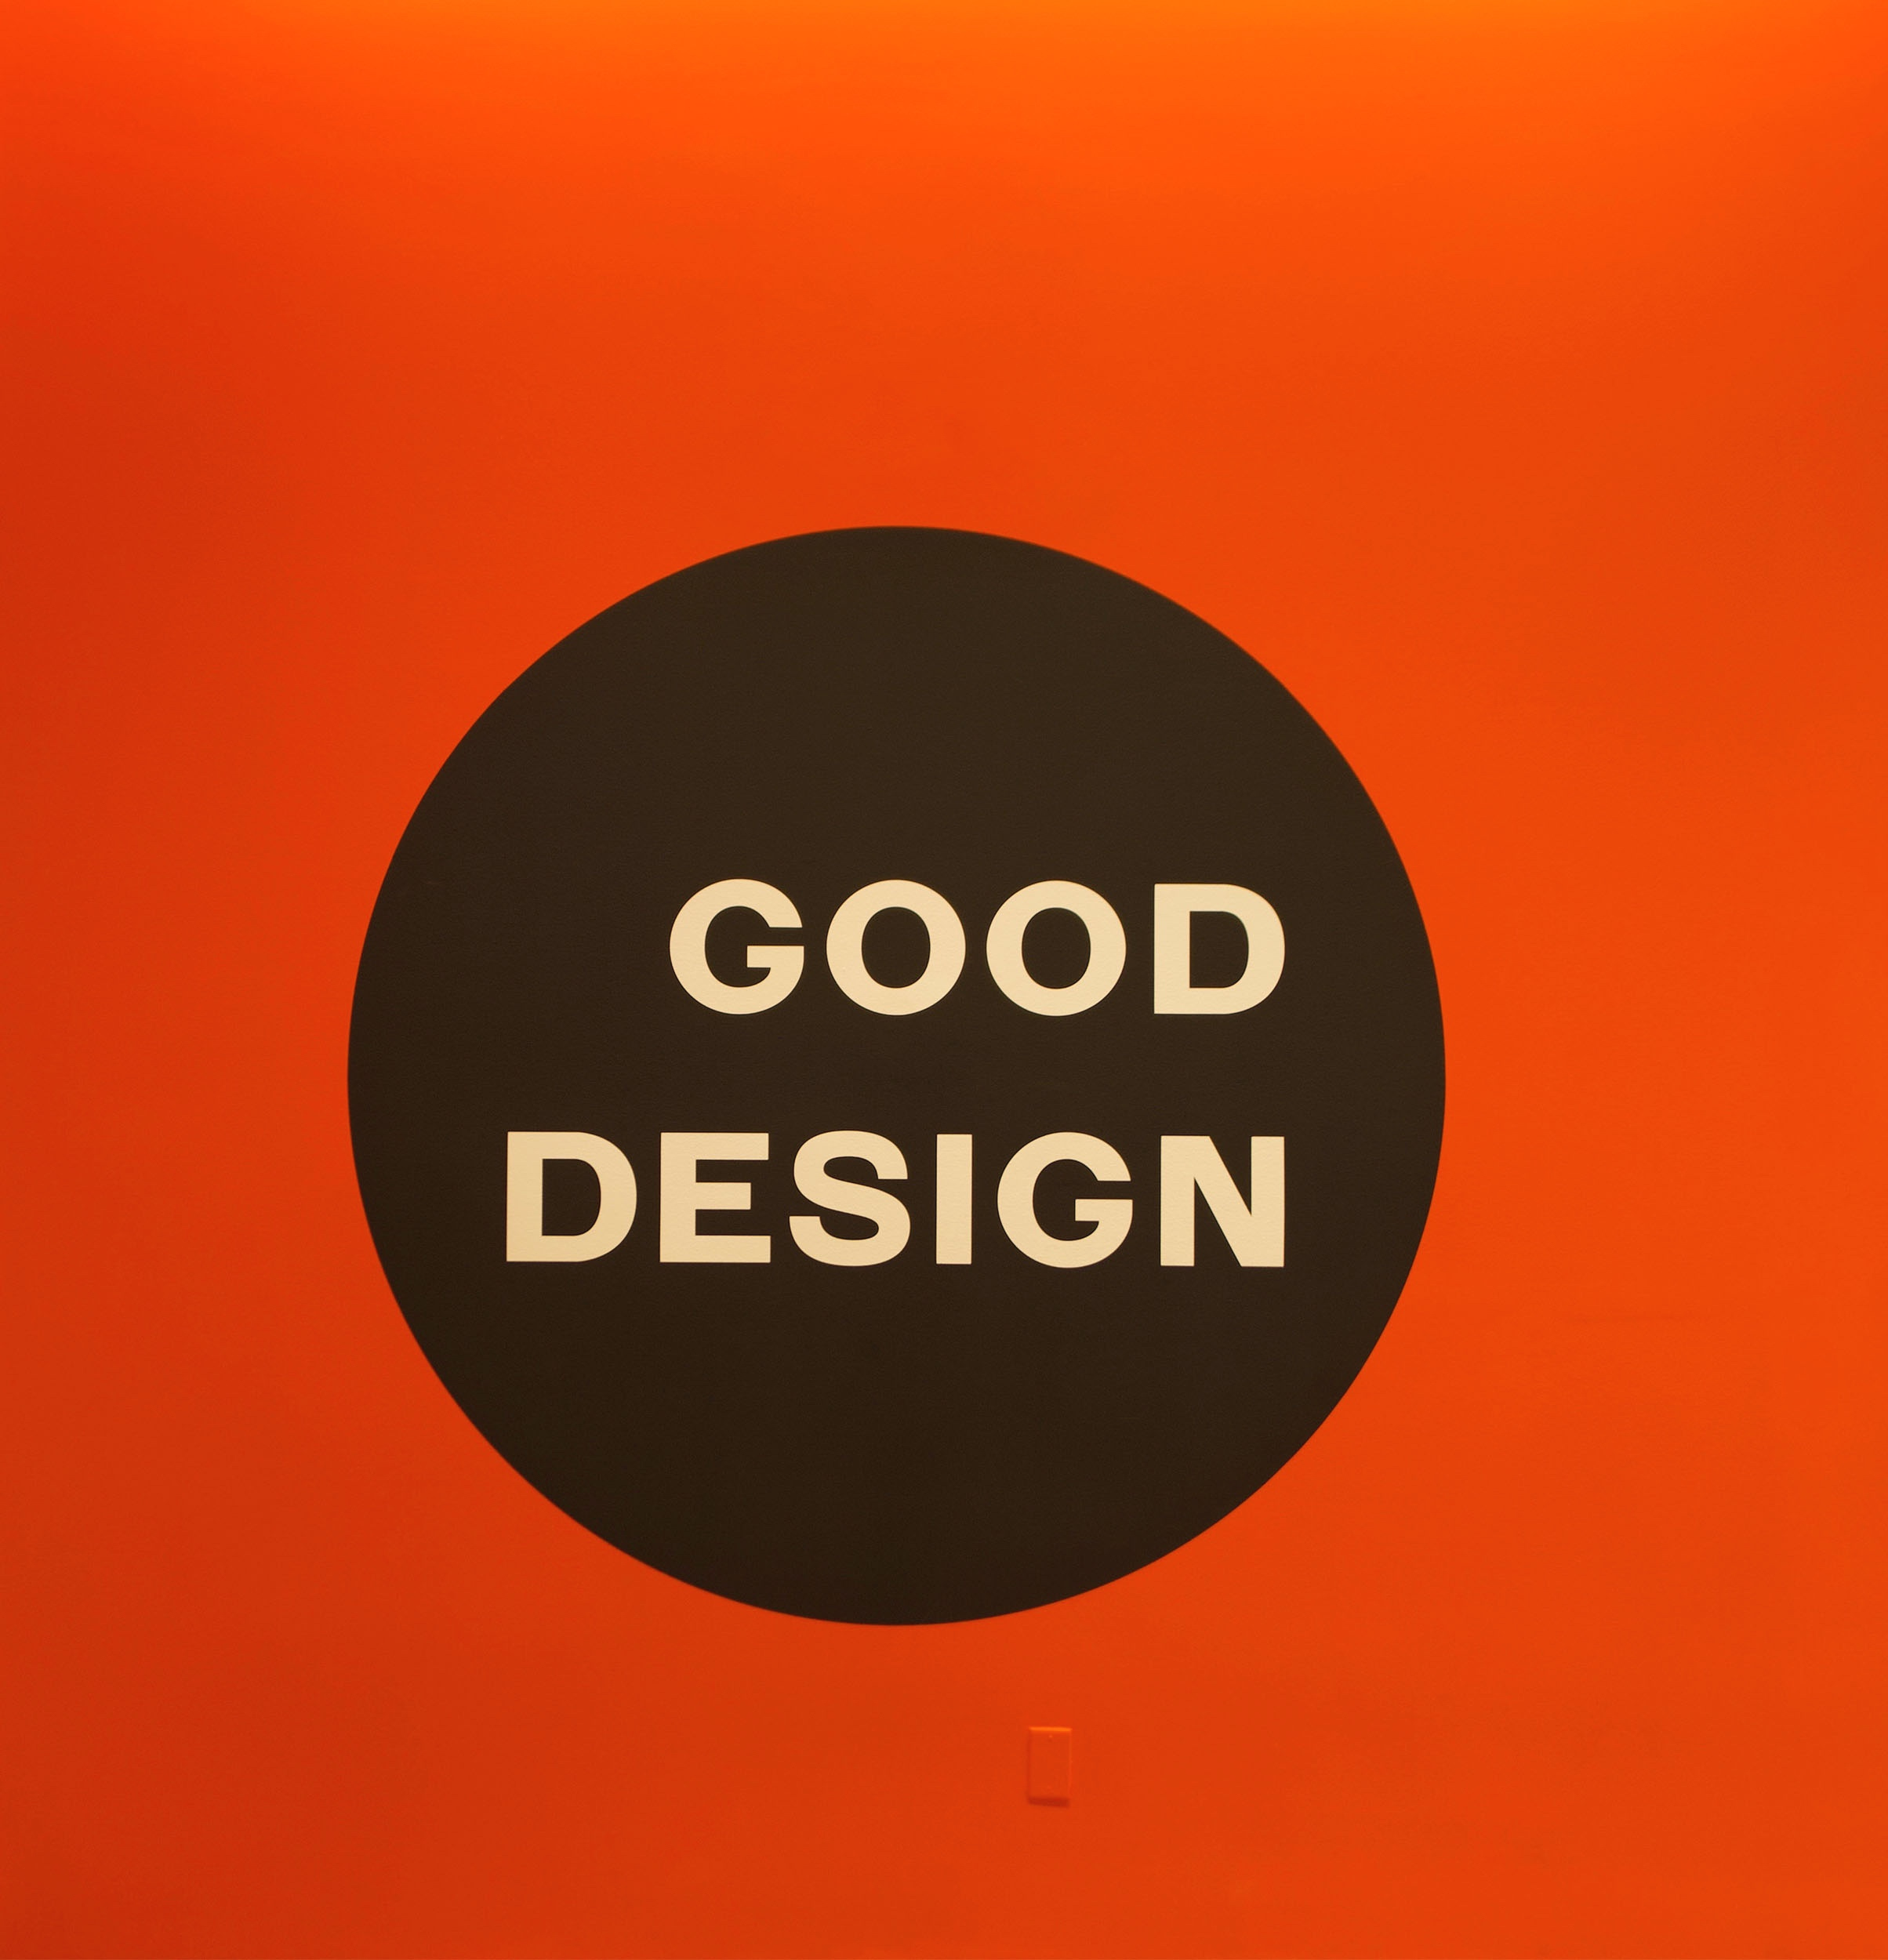 Reproduction of the 'Good Design' logo designed by Morton and Millie Goldsholl Associates in Chicago.